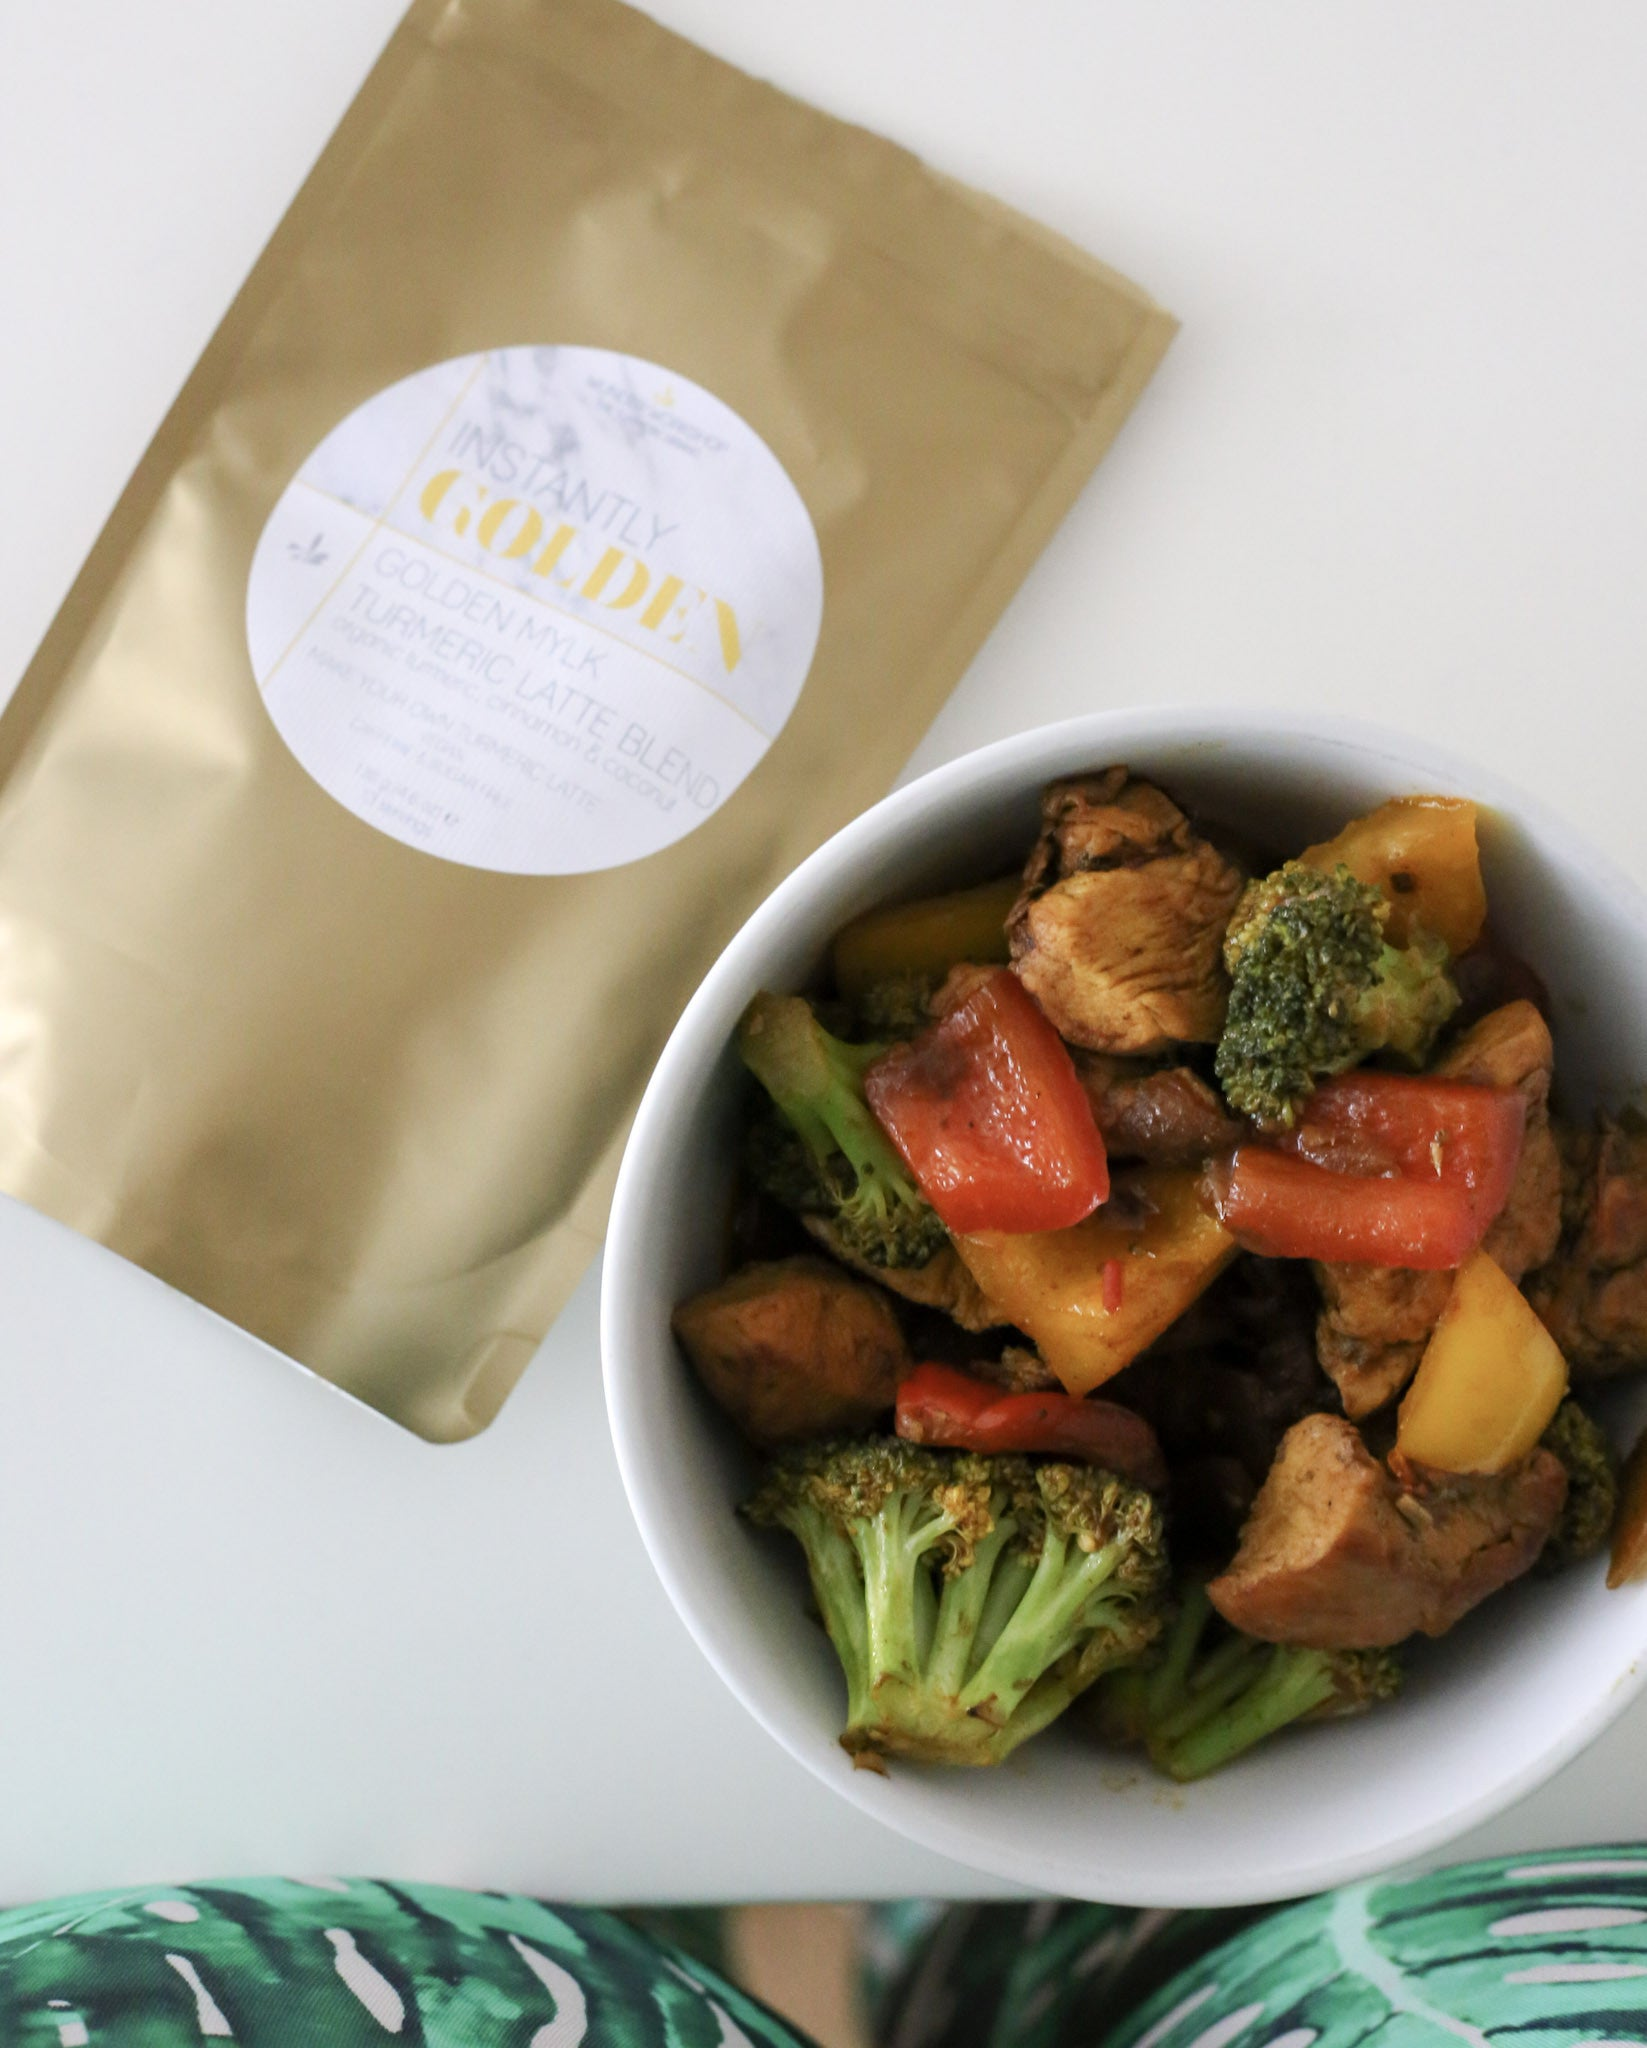 Golden Milk Tumeric Latte Stir Fry